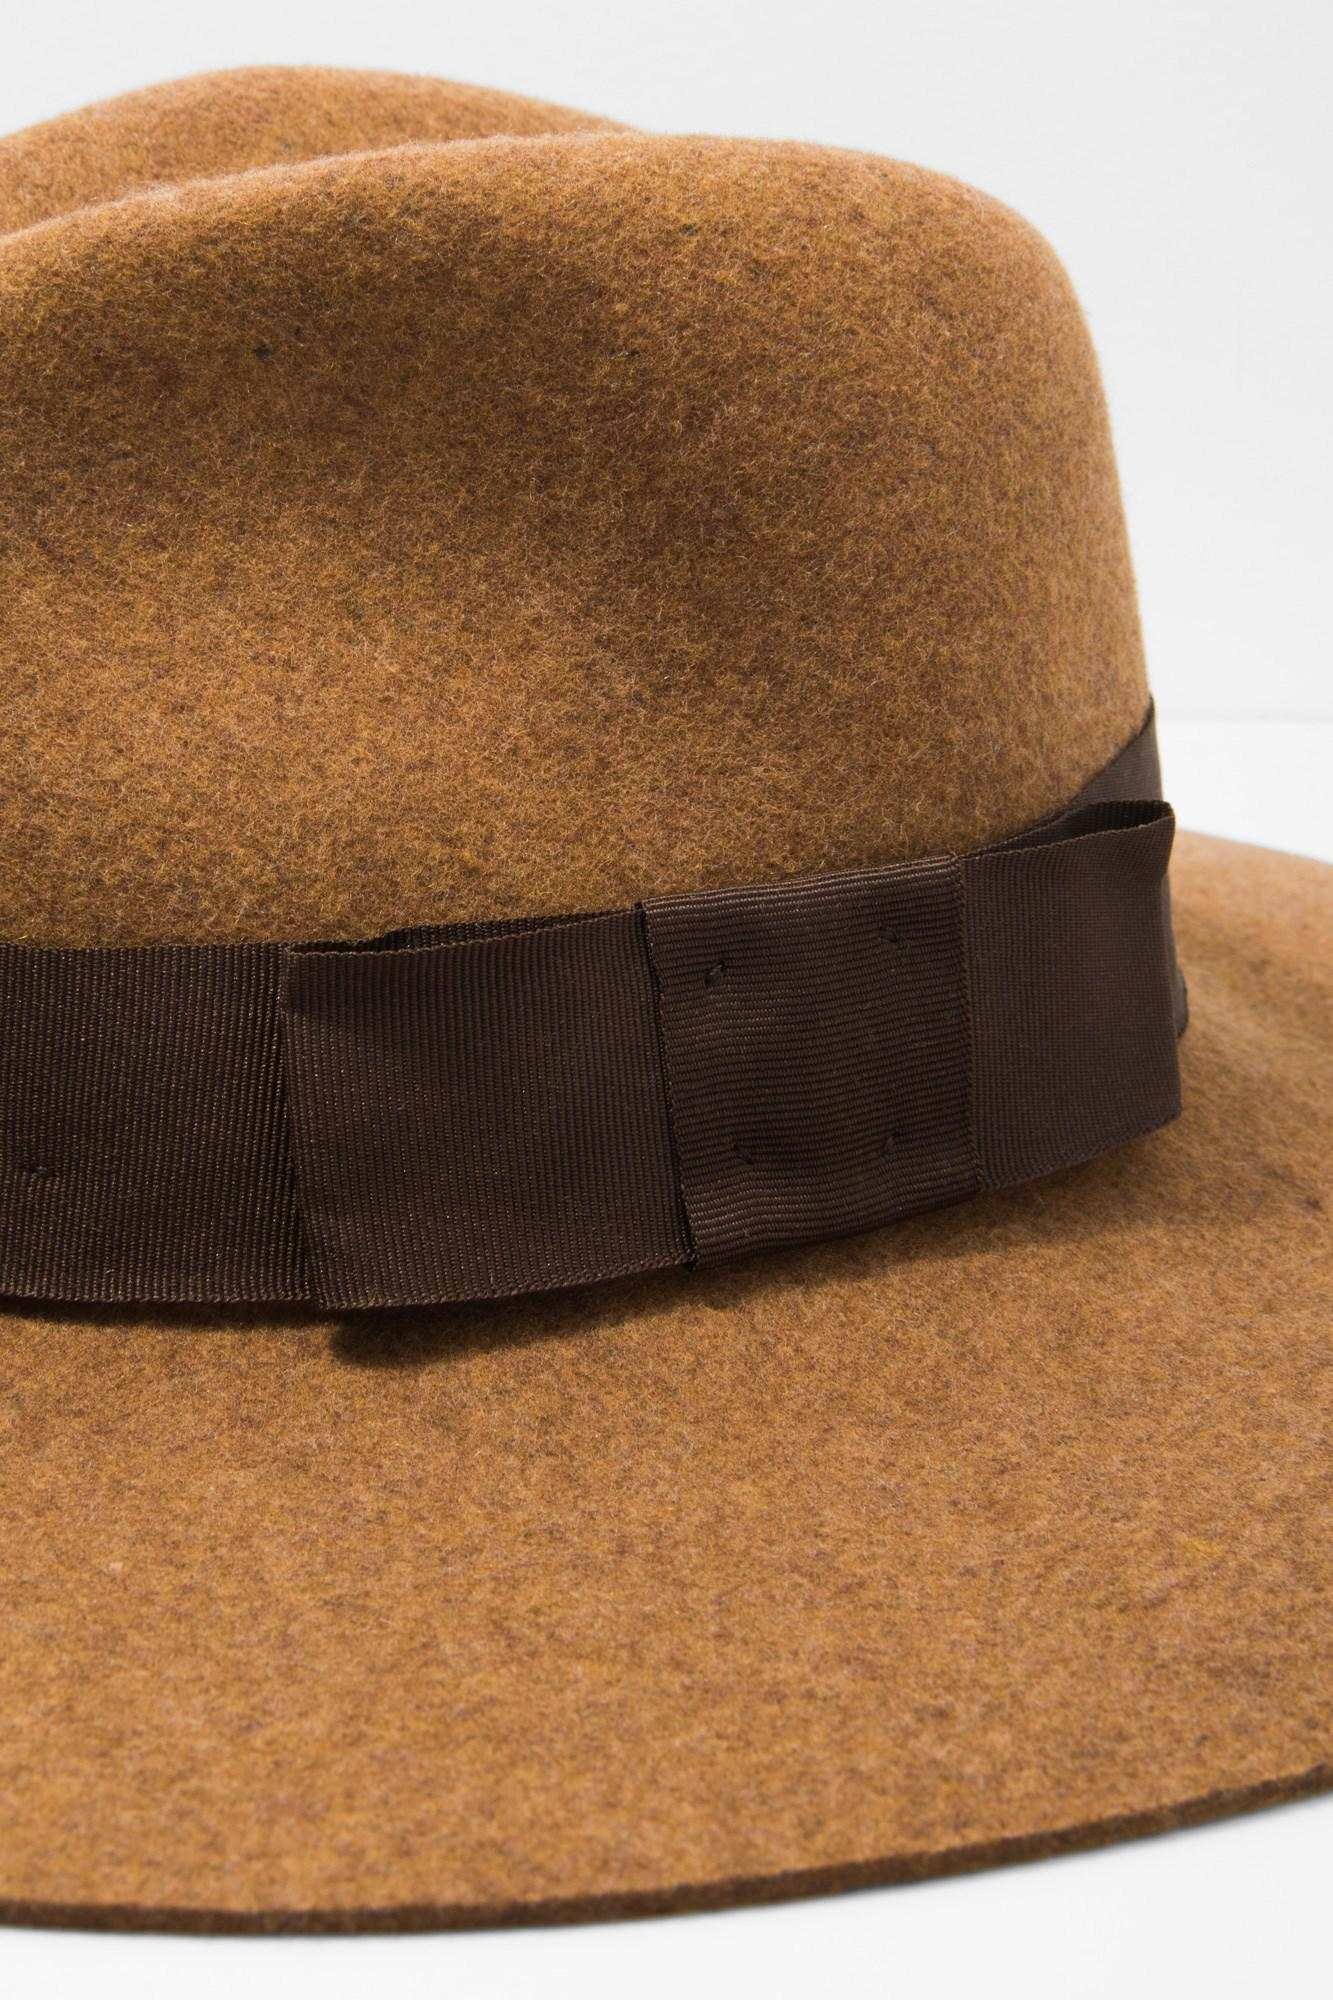 04c49607df4 Lyst - 7 For All Mankind Brixton Piper Hat In Heather Coffee in ...